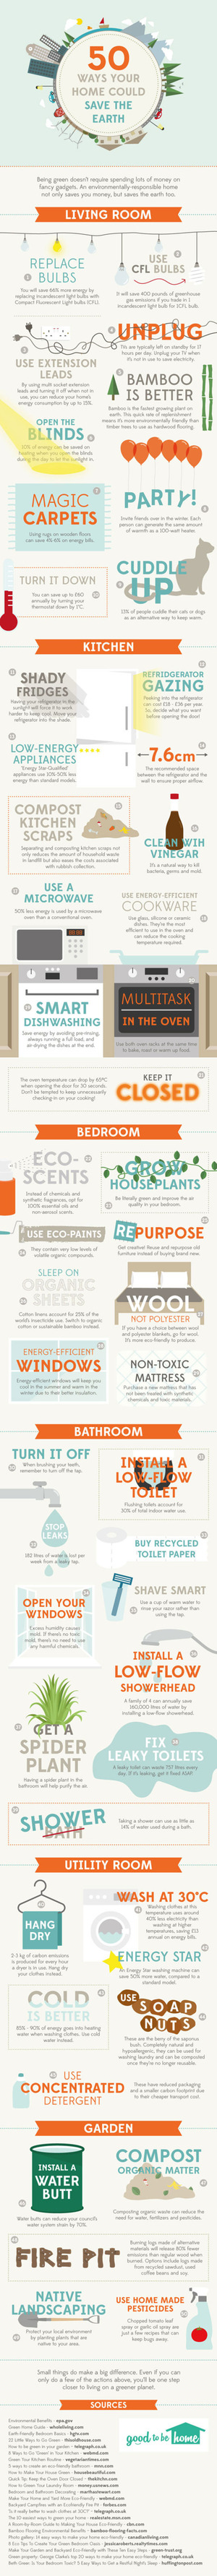 50 Ways Your Home Could Help Save the Earth